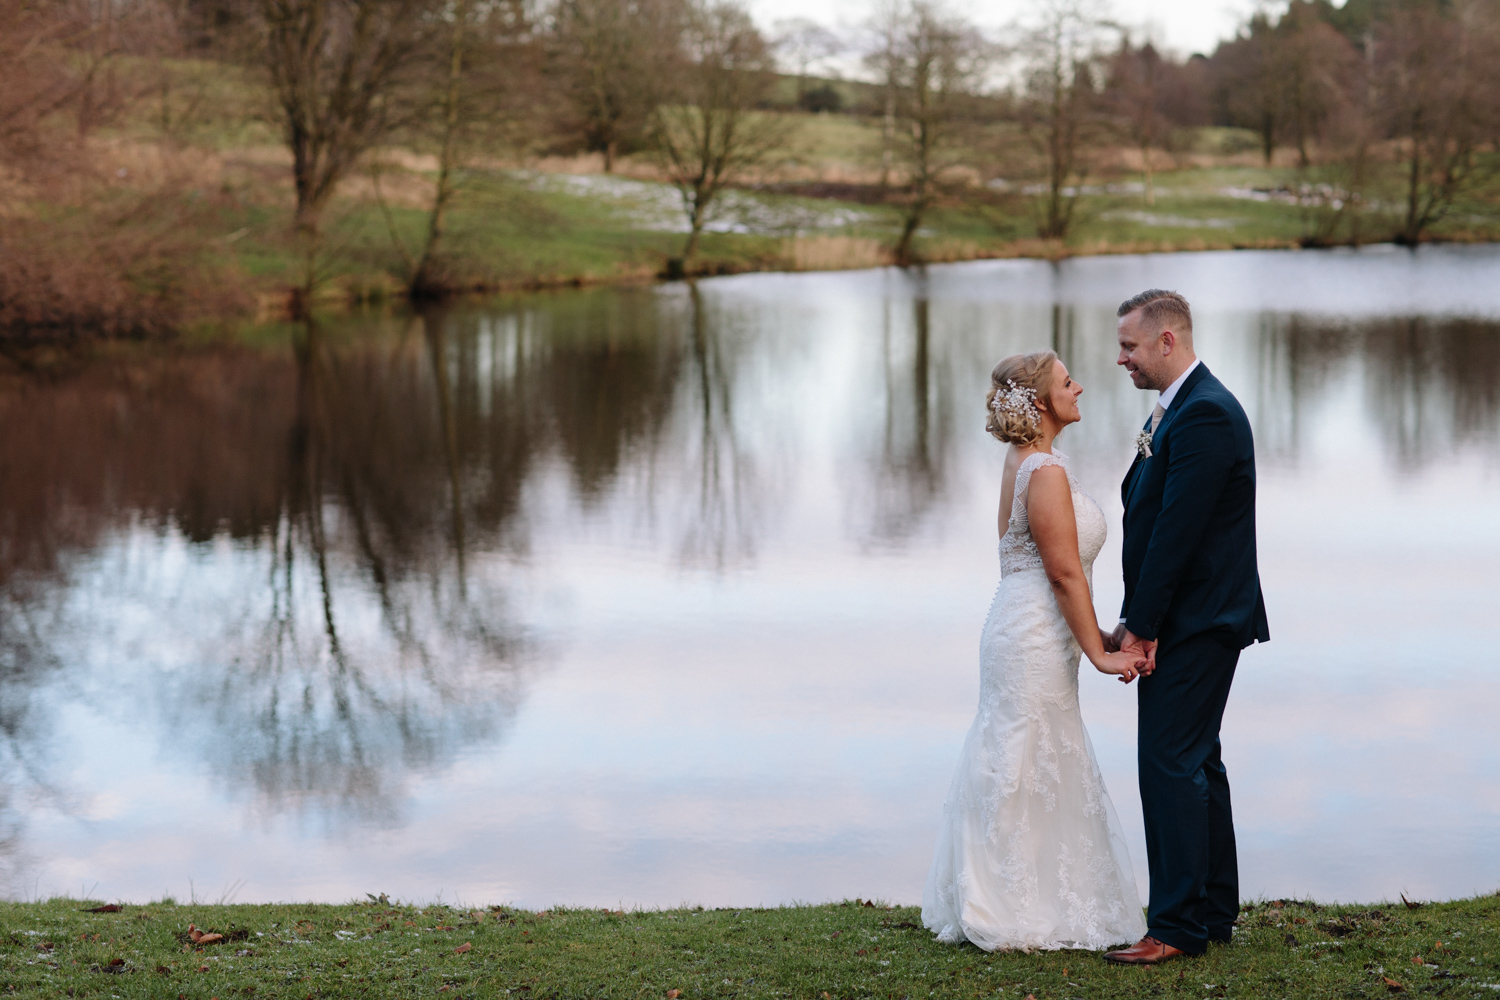 Reflections photography Matt Herrington wedding photographer North West Lancashire